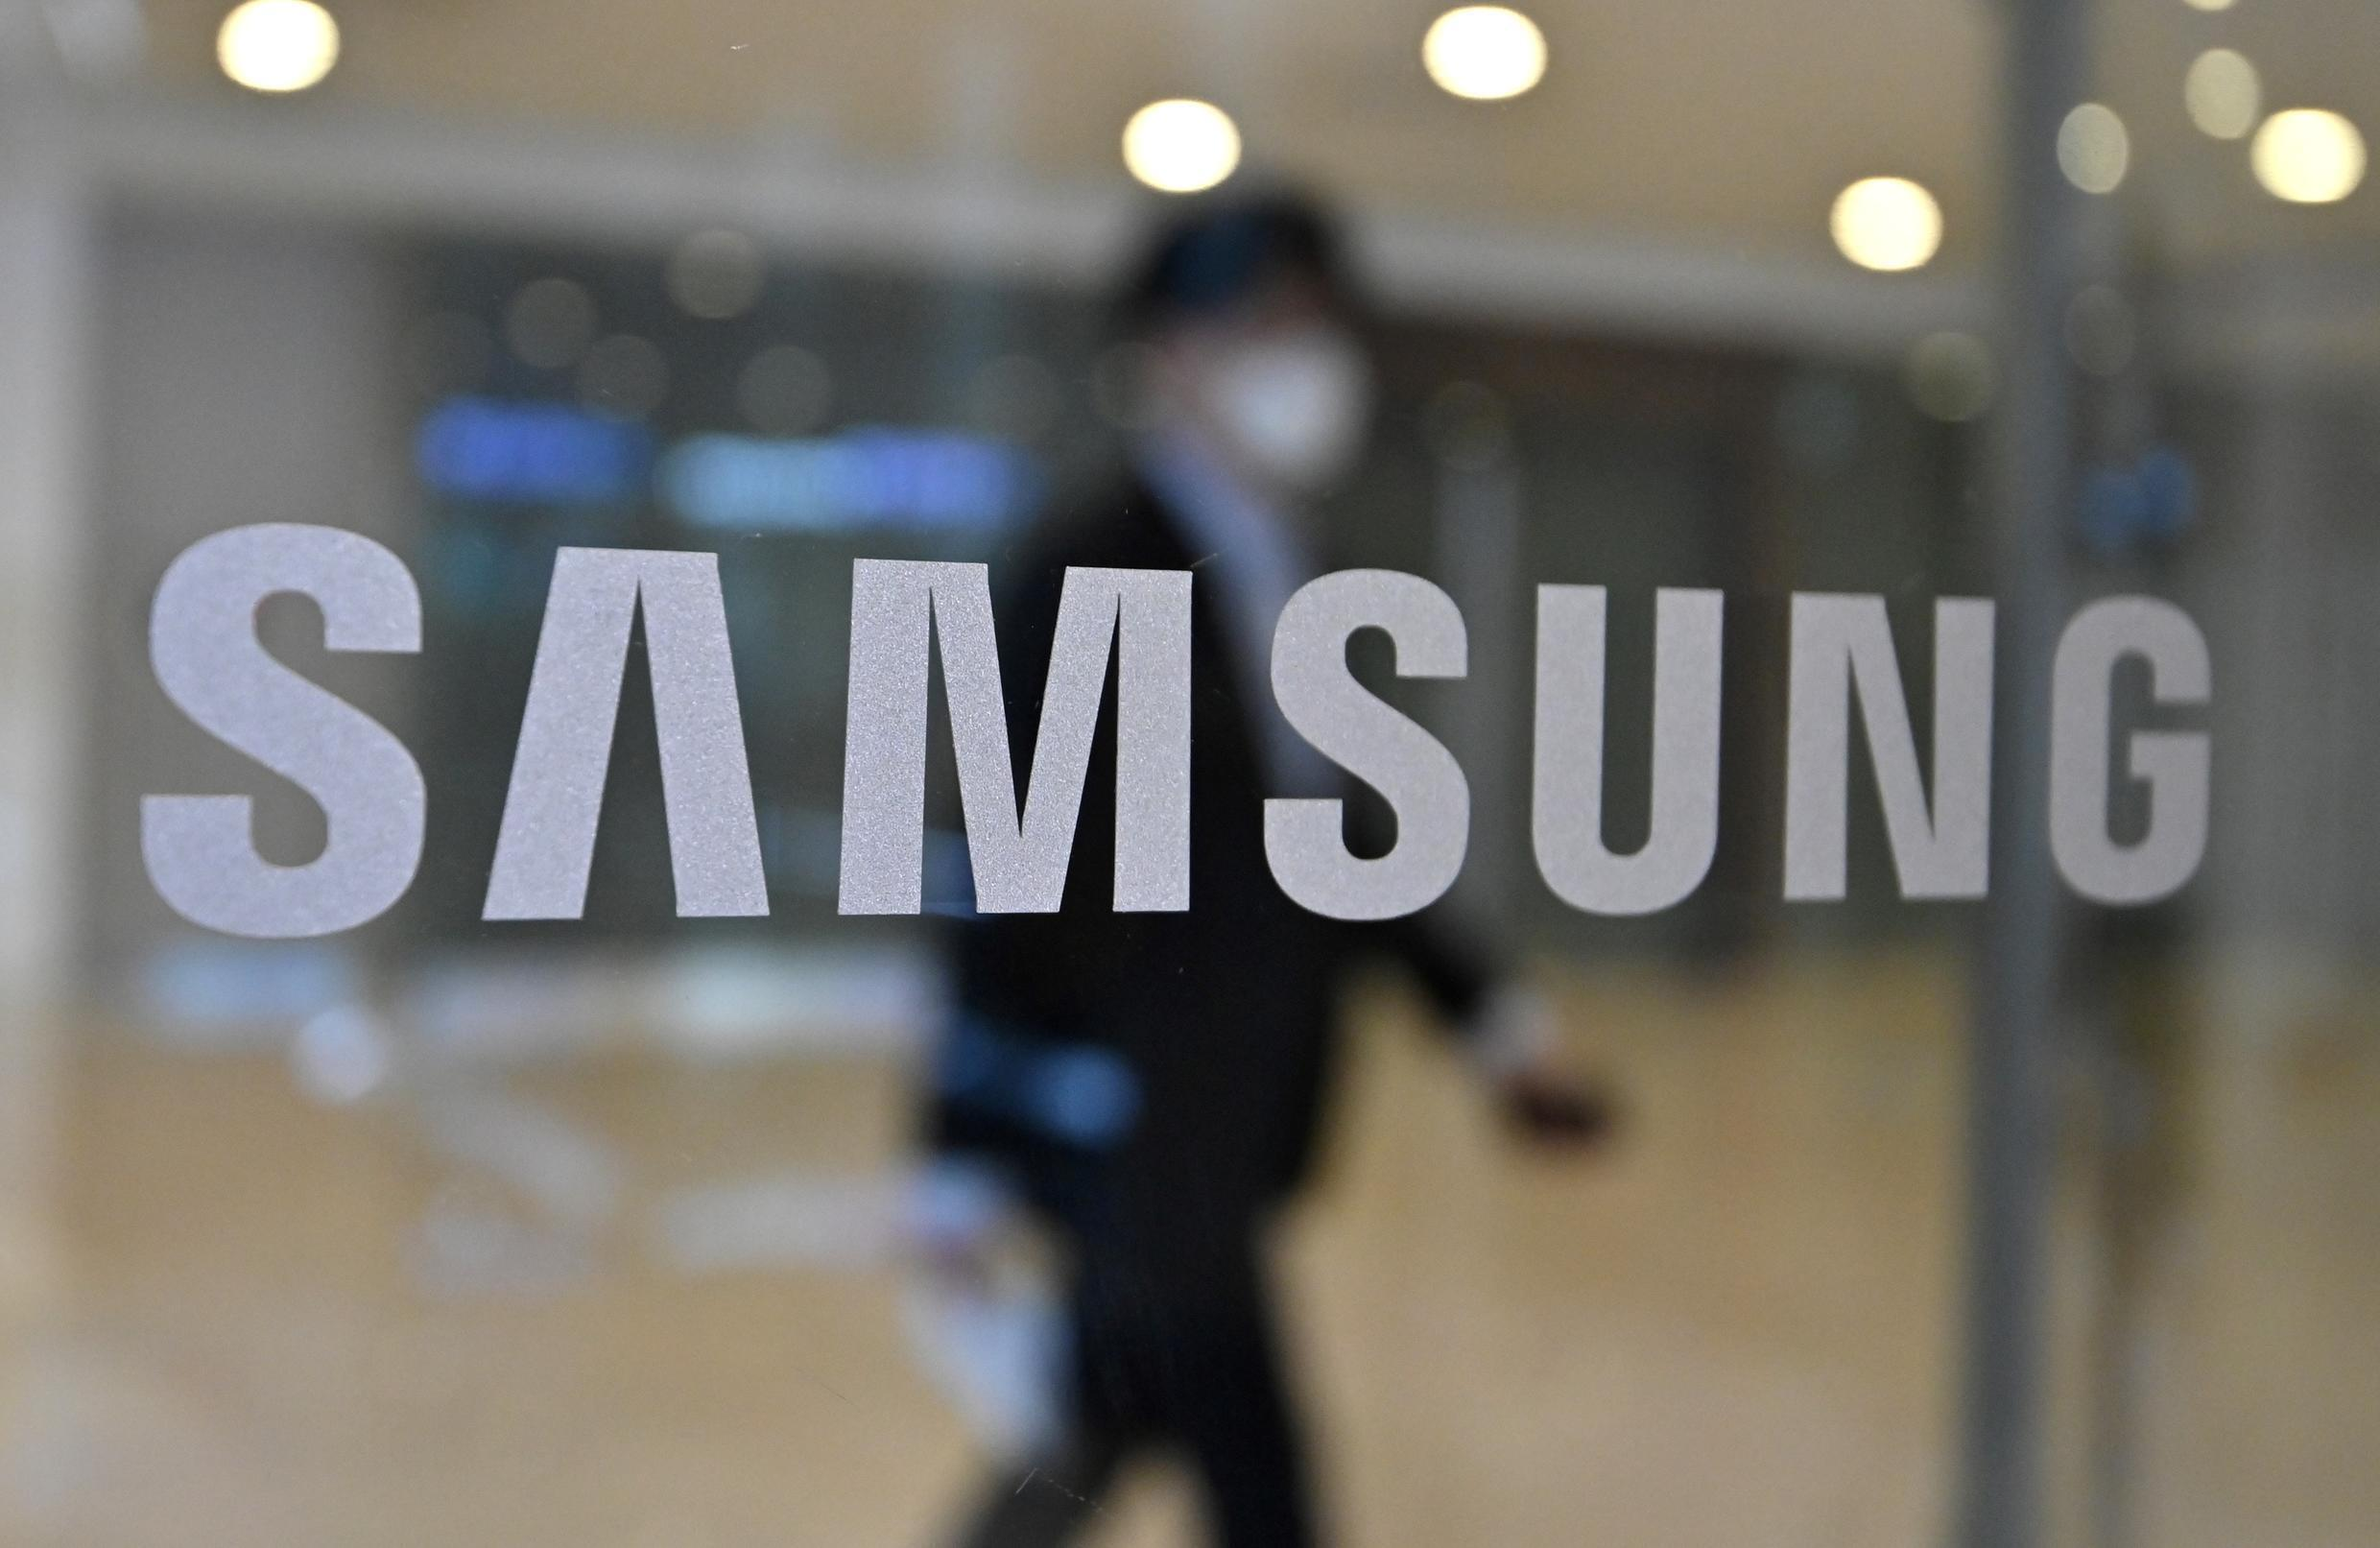 Samsung needs to broaden and deepen its commitment if it is going to have a genuine impact in the fight against climate change, campaign group Greenpeace said